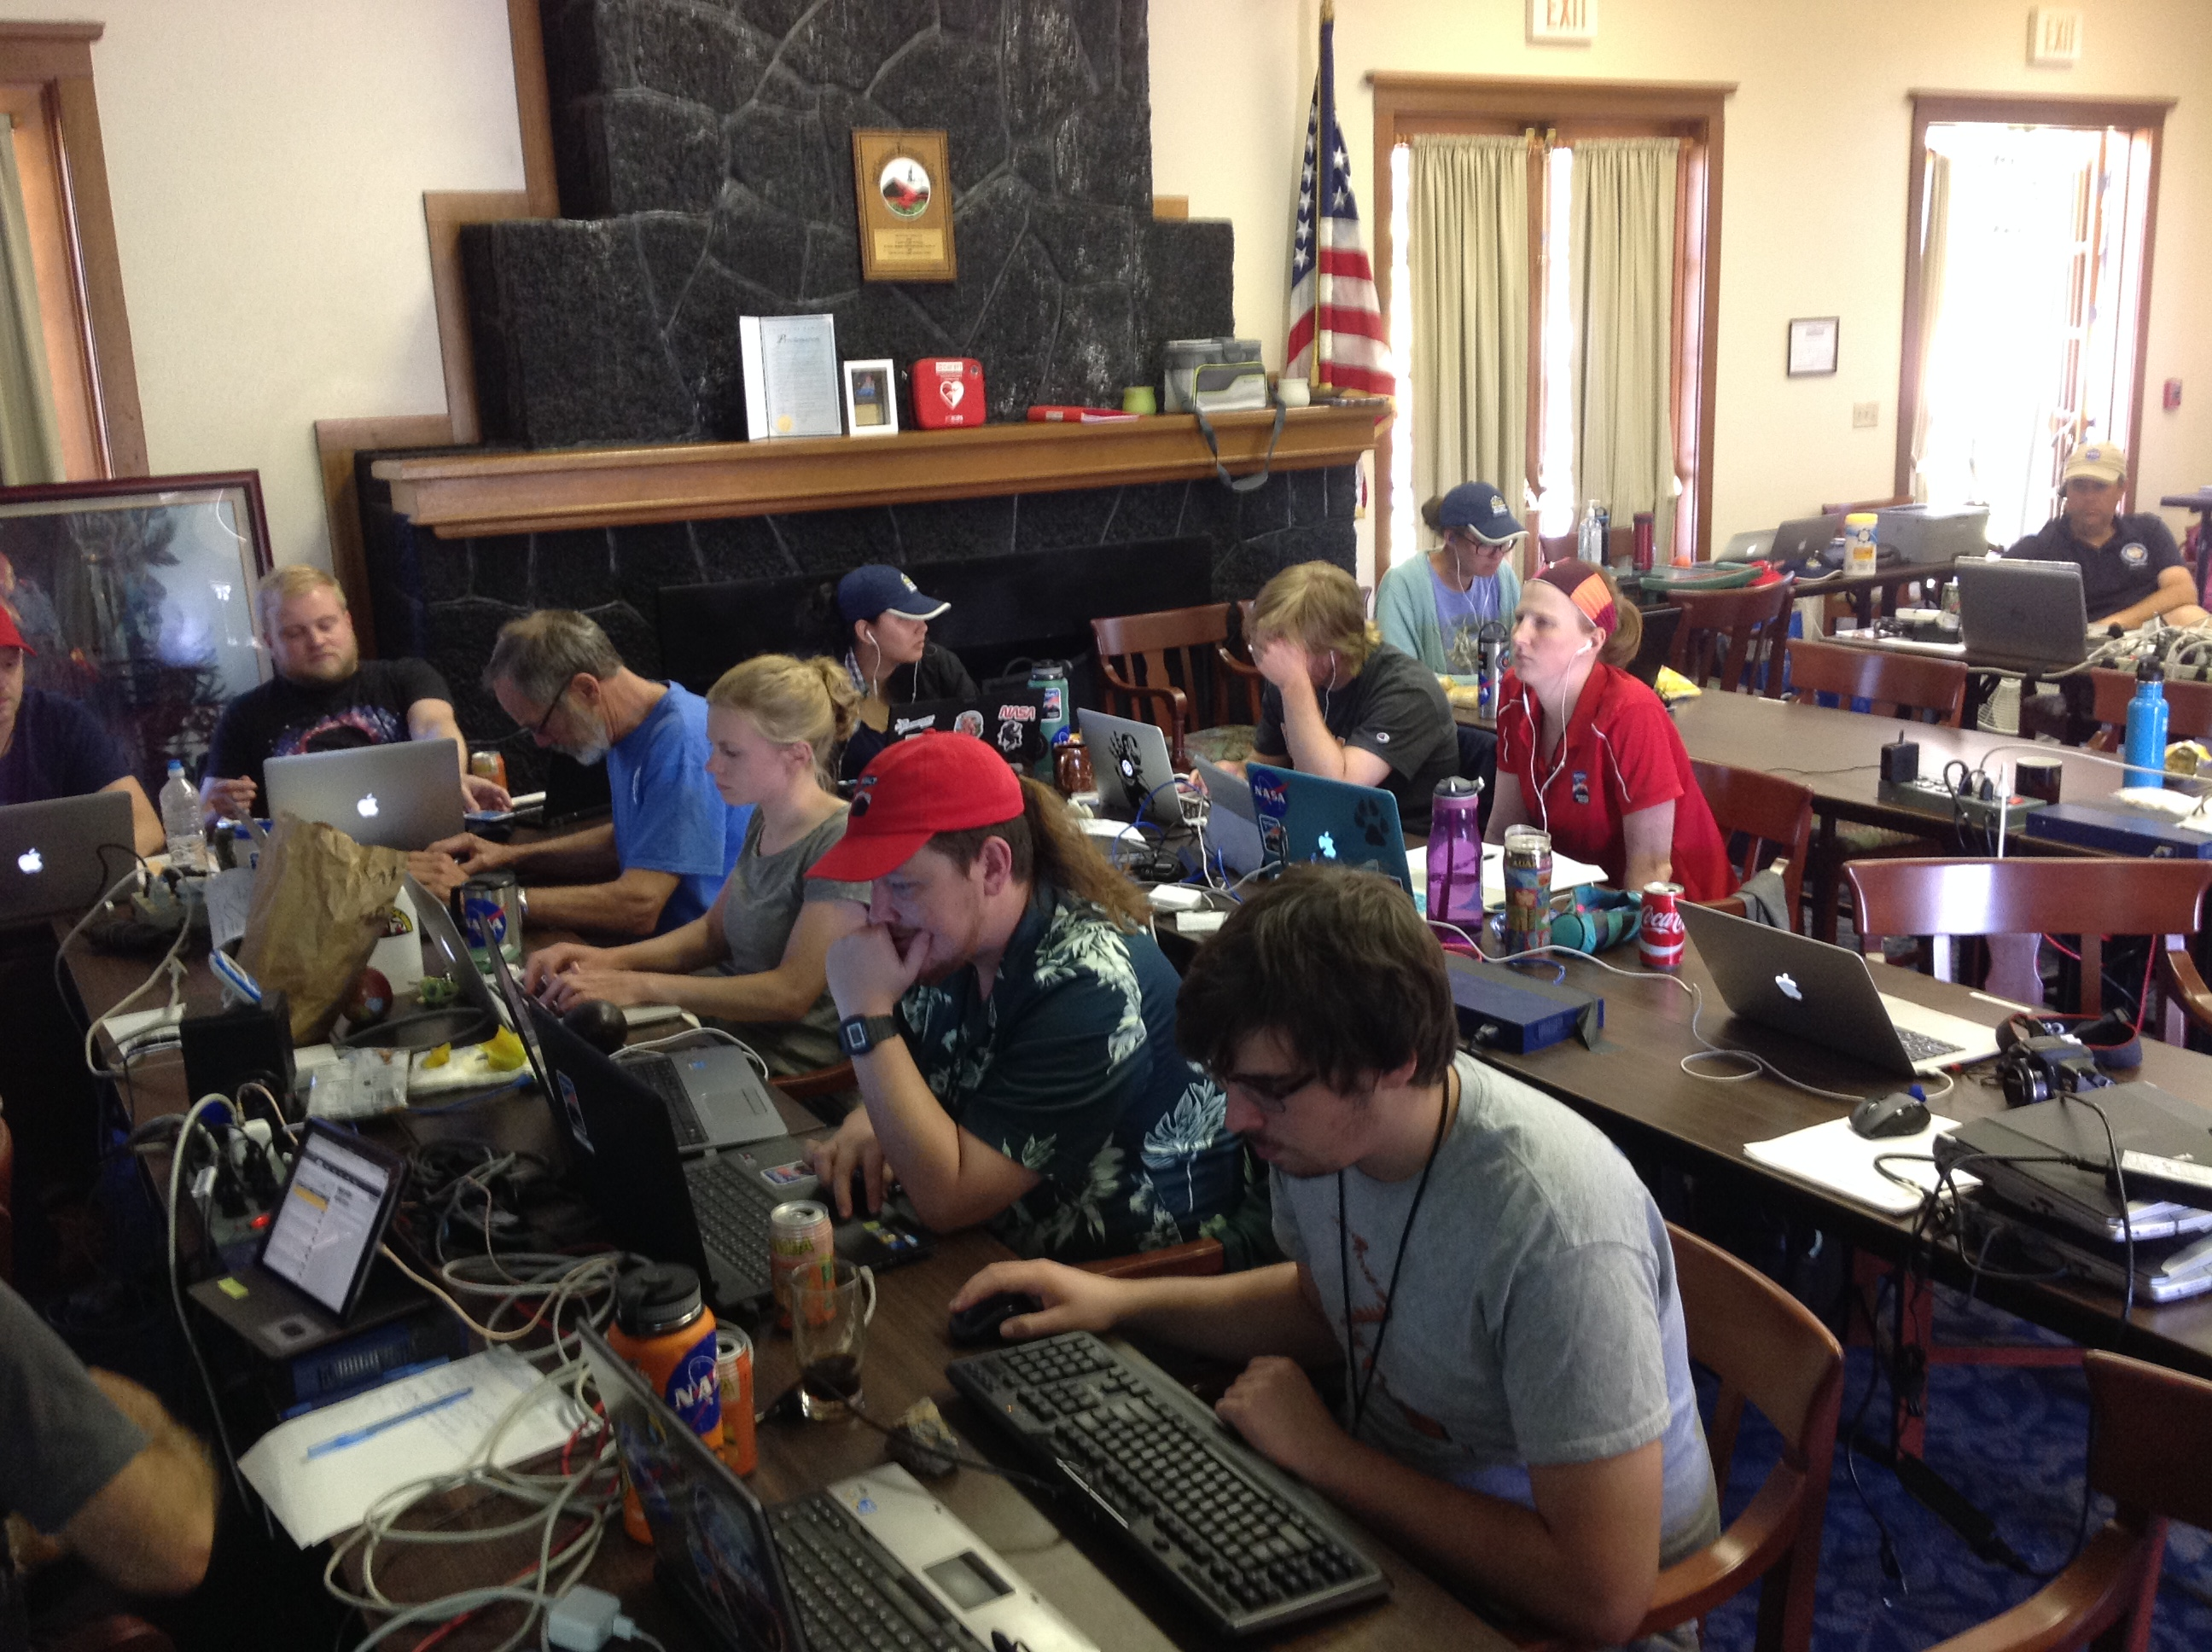 Students at tables seriously working on computers and laptops.